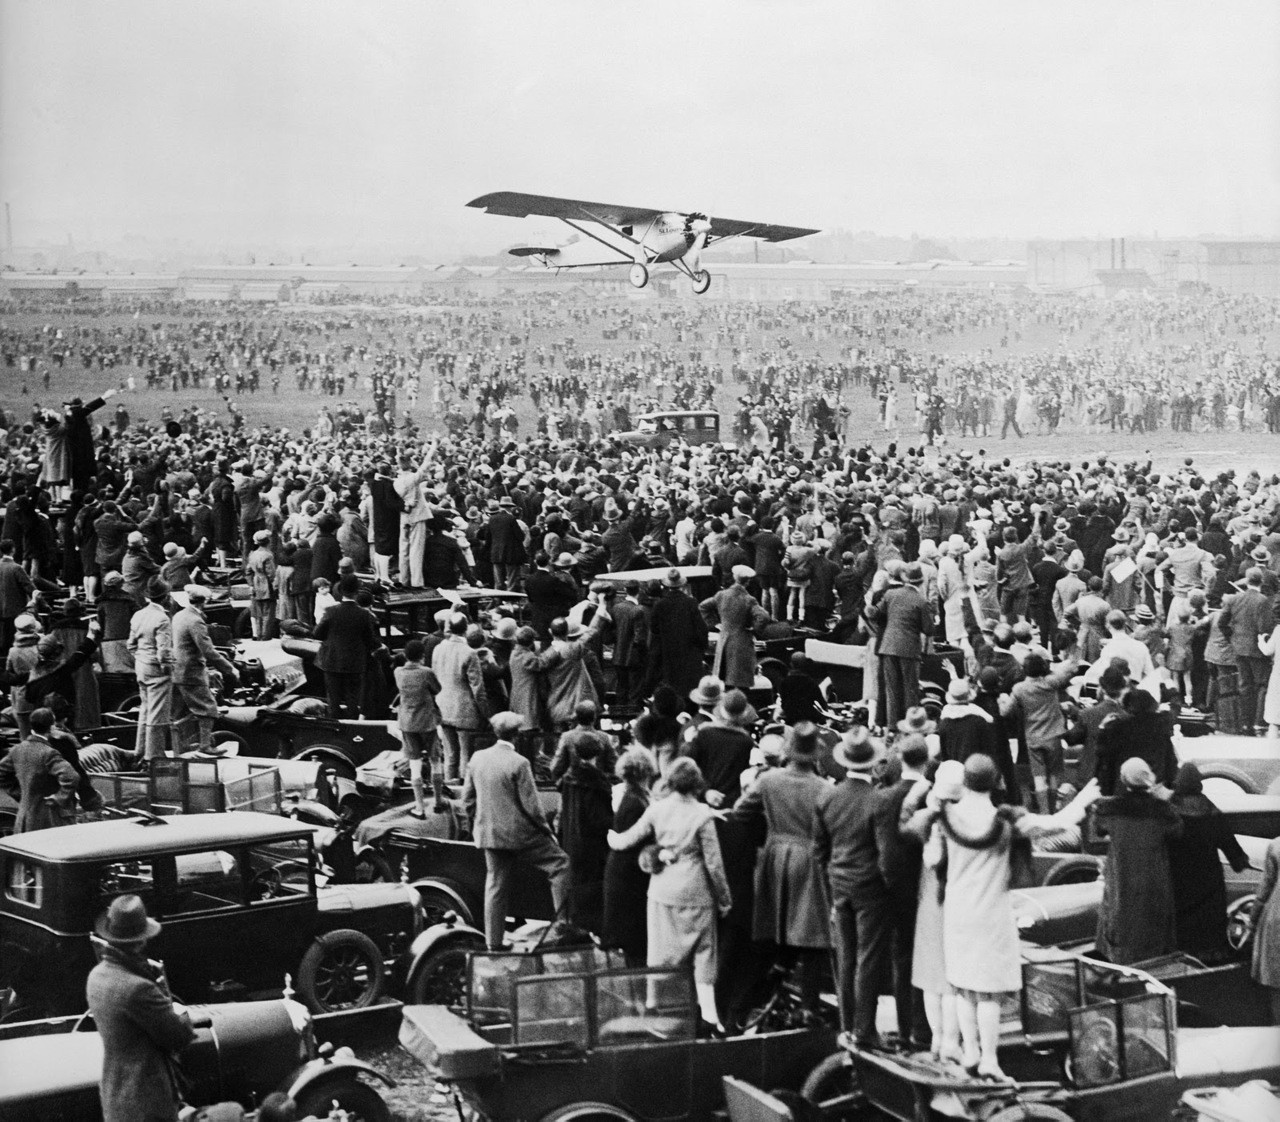 Charles A. Lindbergh lands the Spirit of St. Louis at Croydon Aerodrome in South London on May 29, 1927.